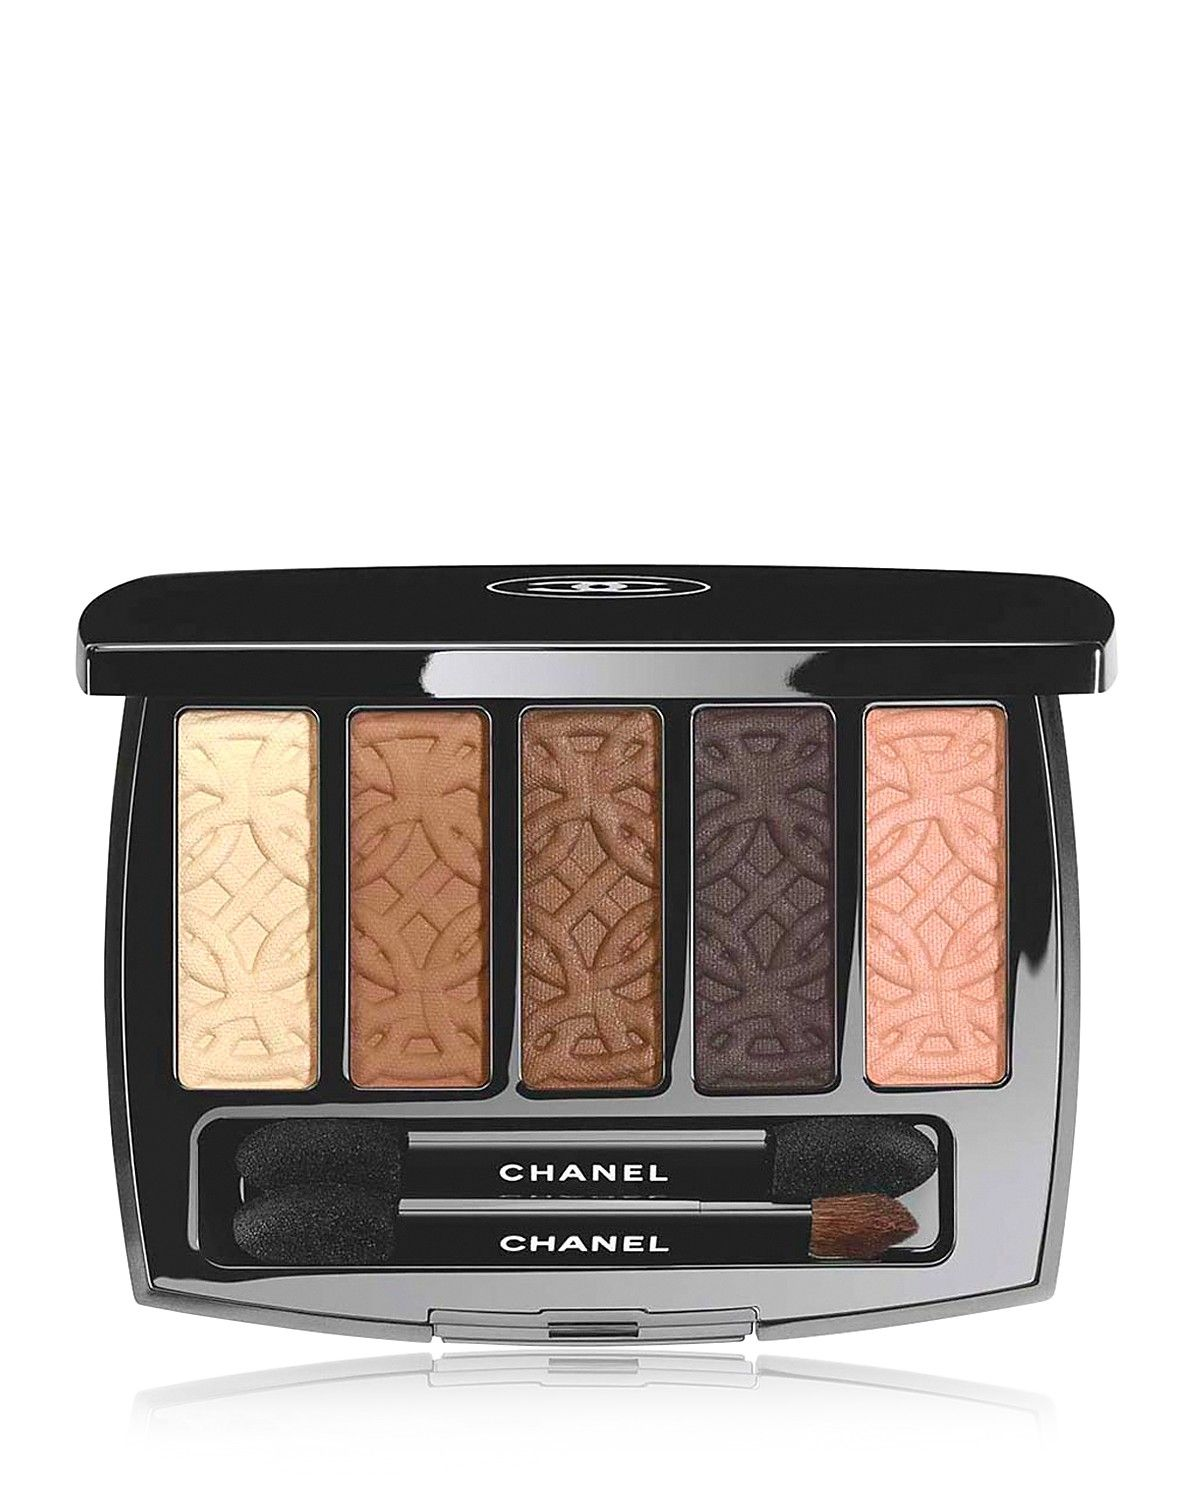 3ebfd93bc98 CHANEL LES 5 OMBRES DE CHANEL Eyeshadow Palette in Entrelacs Limited  Edition